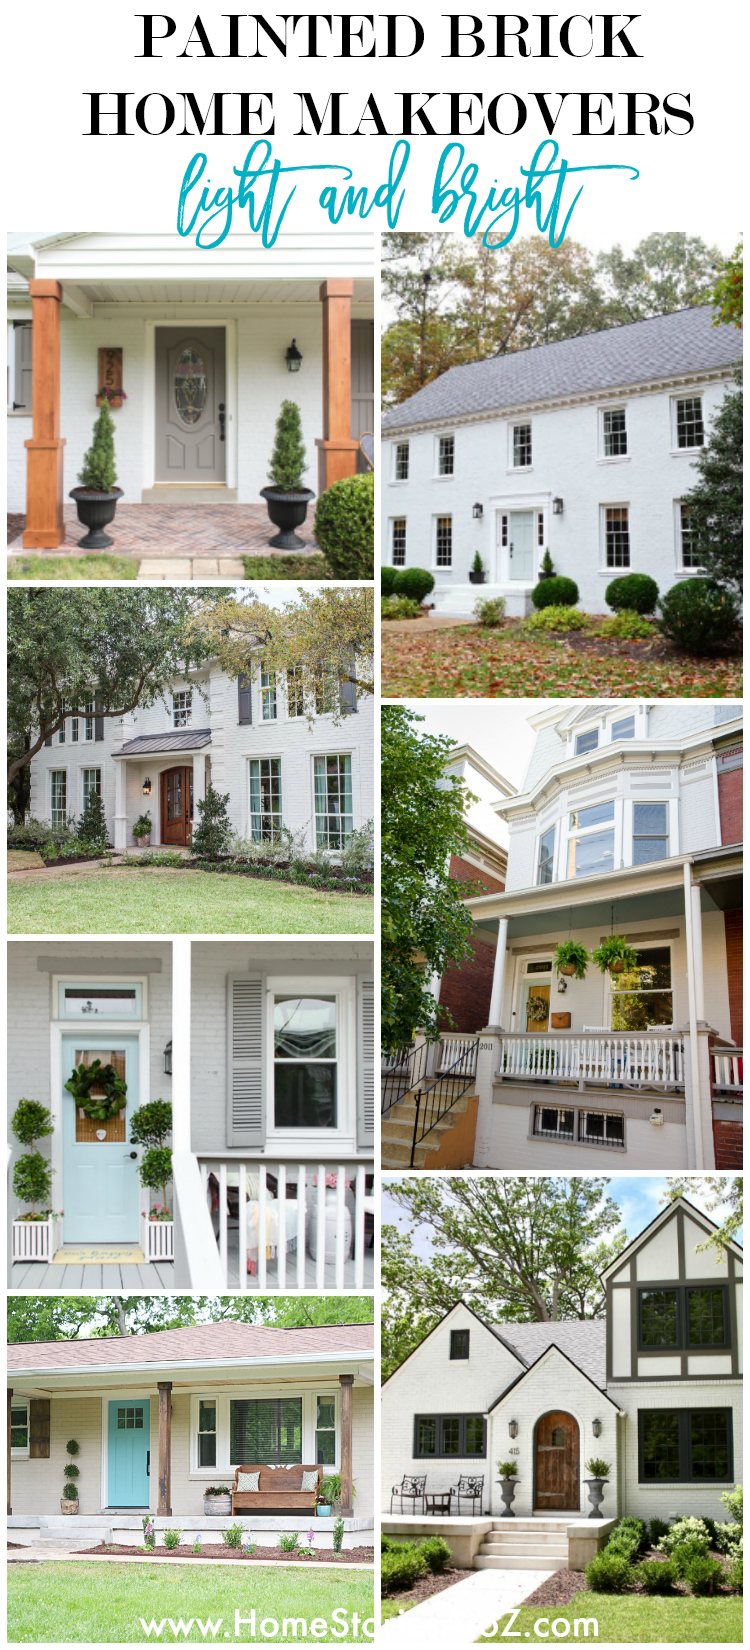 Painted Brick Home Exterior Renovations - Tips and Tutorials